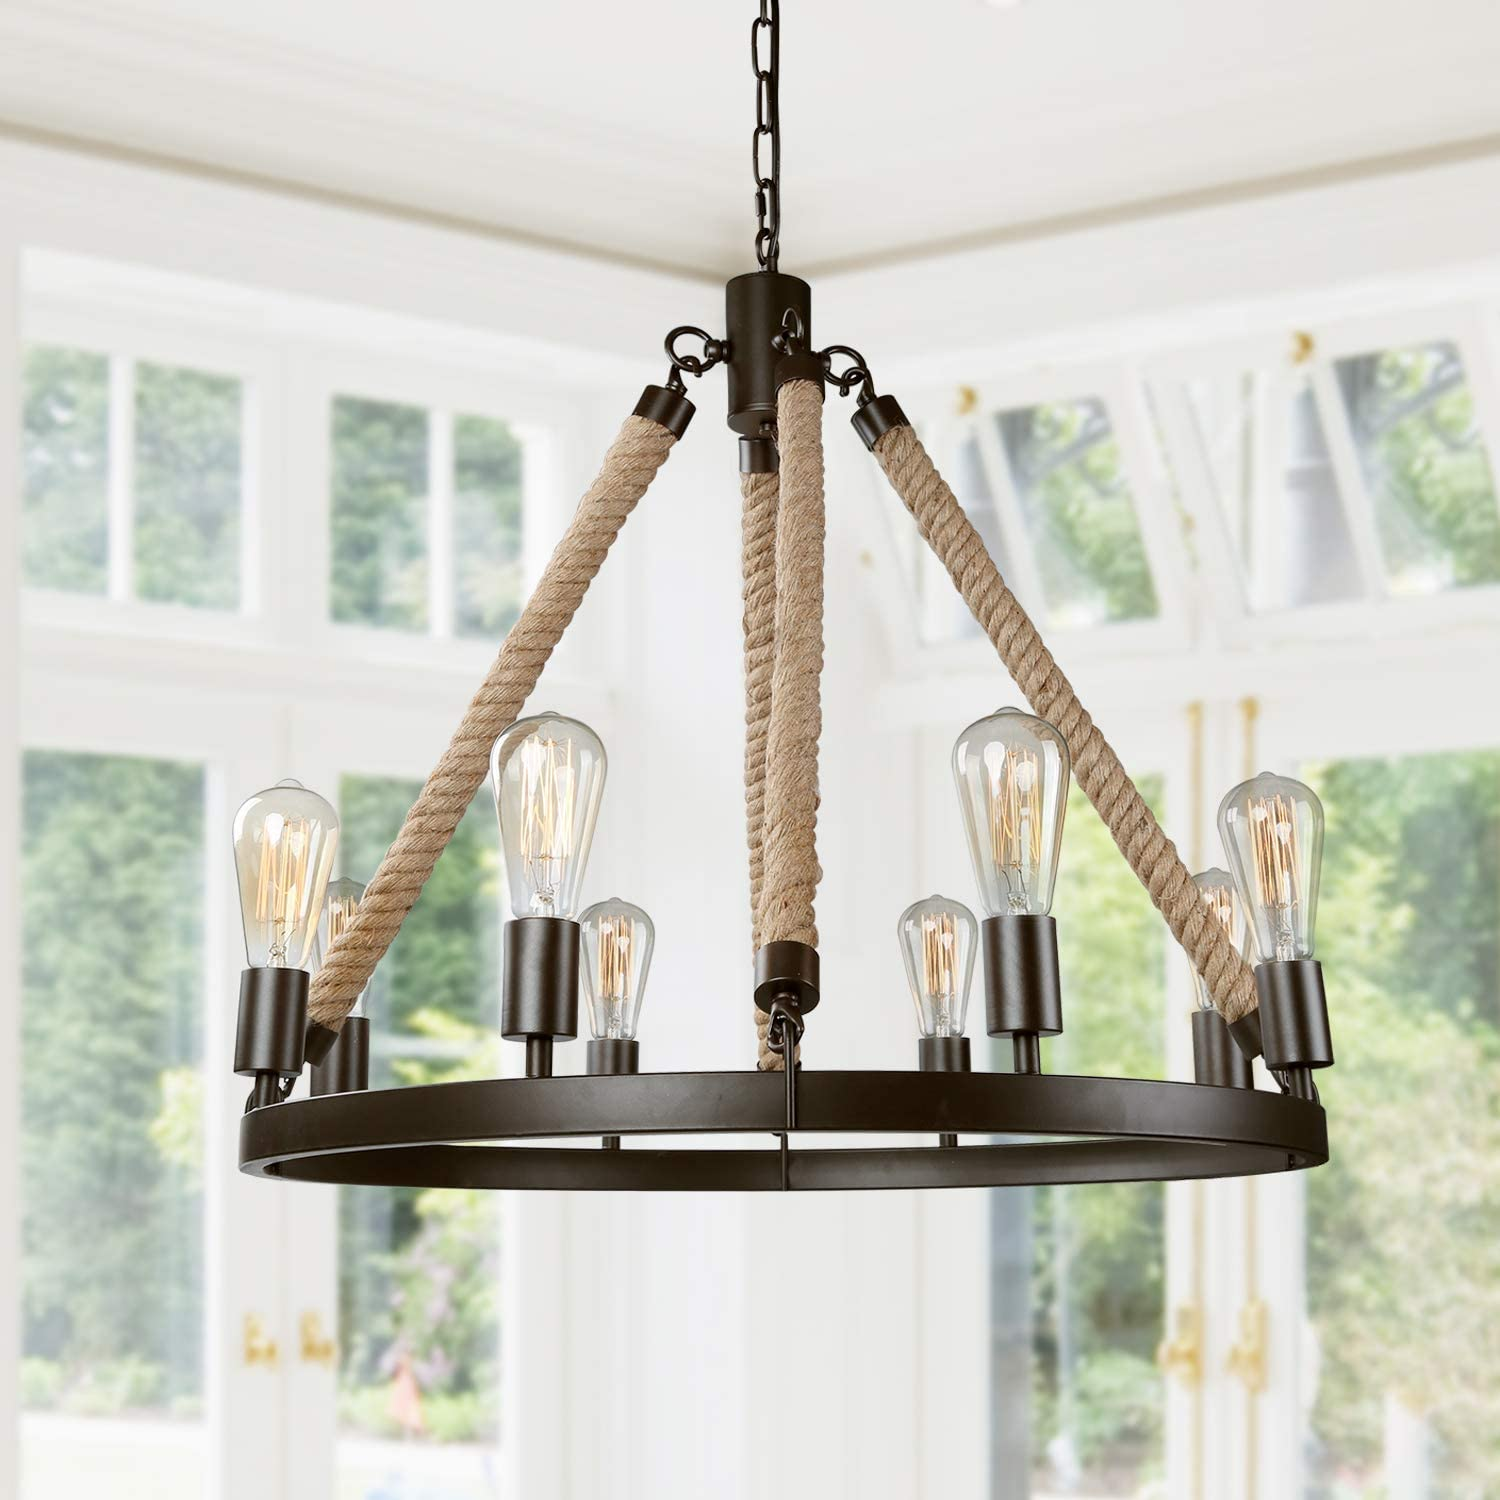 Lnc Farmhouse Chandeliers Large Rustic Round Wagon Wheel 8 Light Fixture With Rope For Dining Living Room Bedroom Kitchen And Foyer Brown